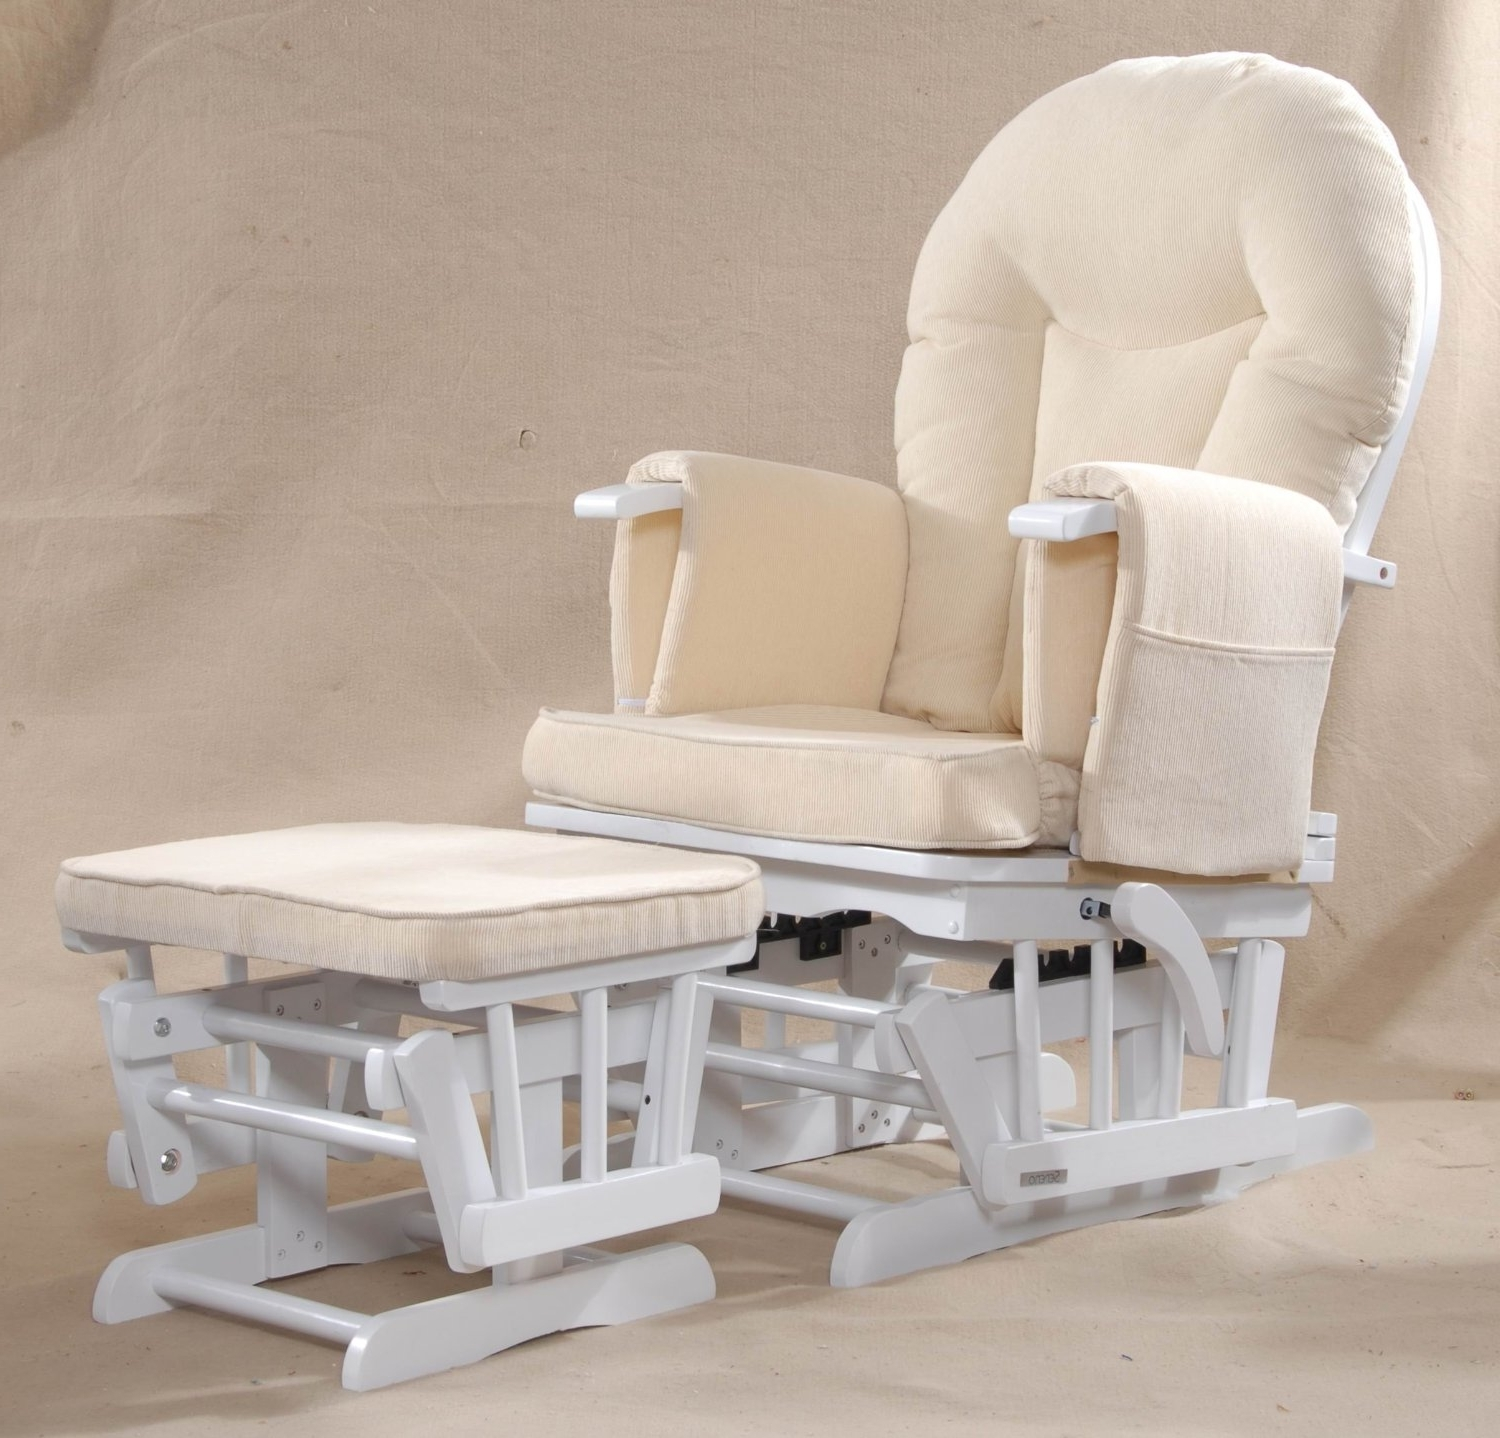 Bedroom : Nursery Rocking Chair Nursing Chair Glider Rocker Baby Inside Well Liked Rocking Chairs For Nursing (View 8 of 20)